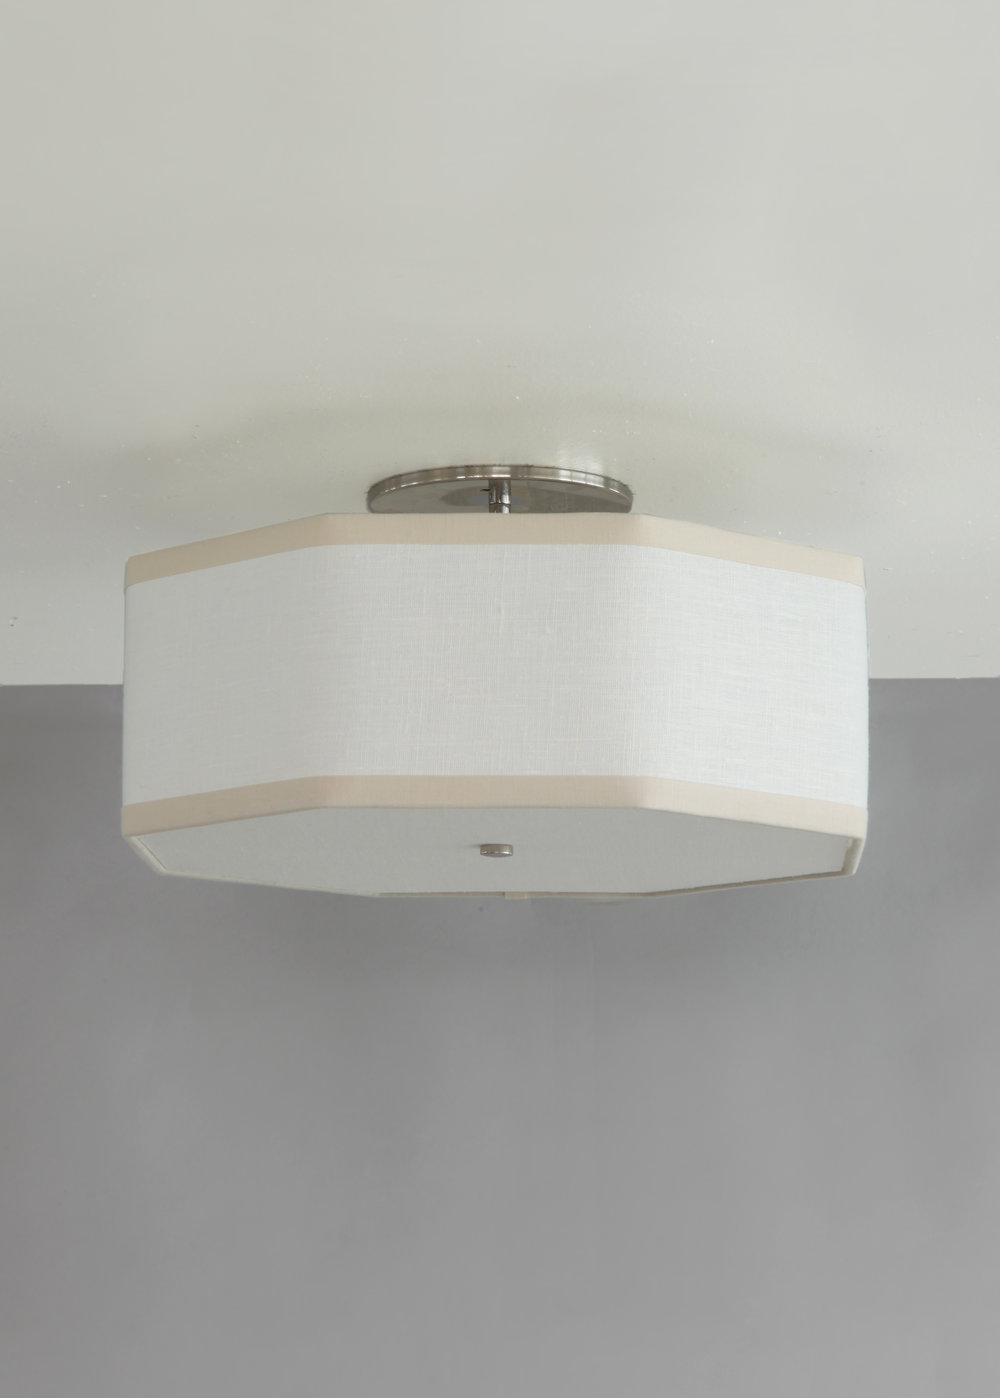 Hexagon + Octagon_C-102_Octagon Ceiling Fixture_Satin Nickel_ White and Tan.jpg